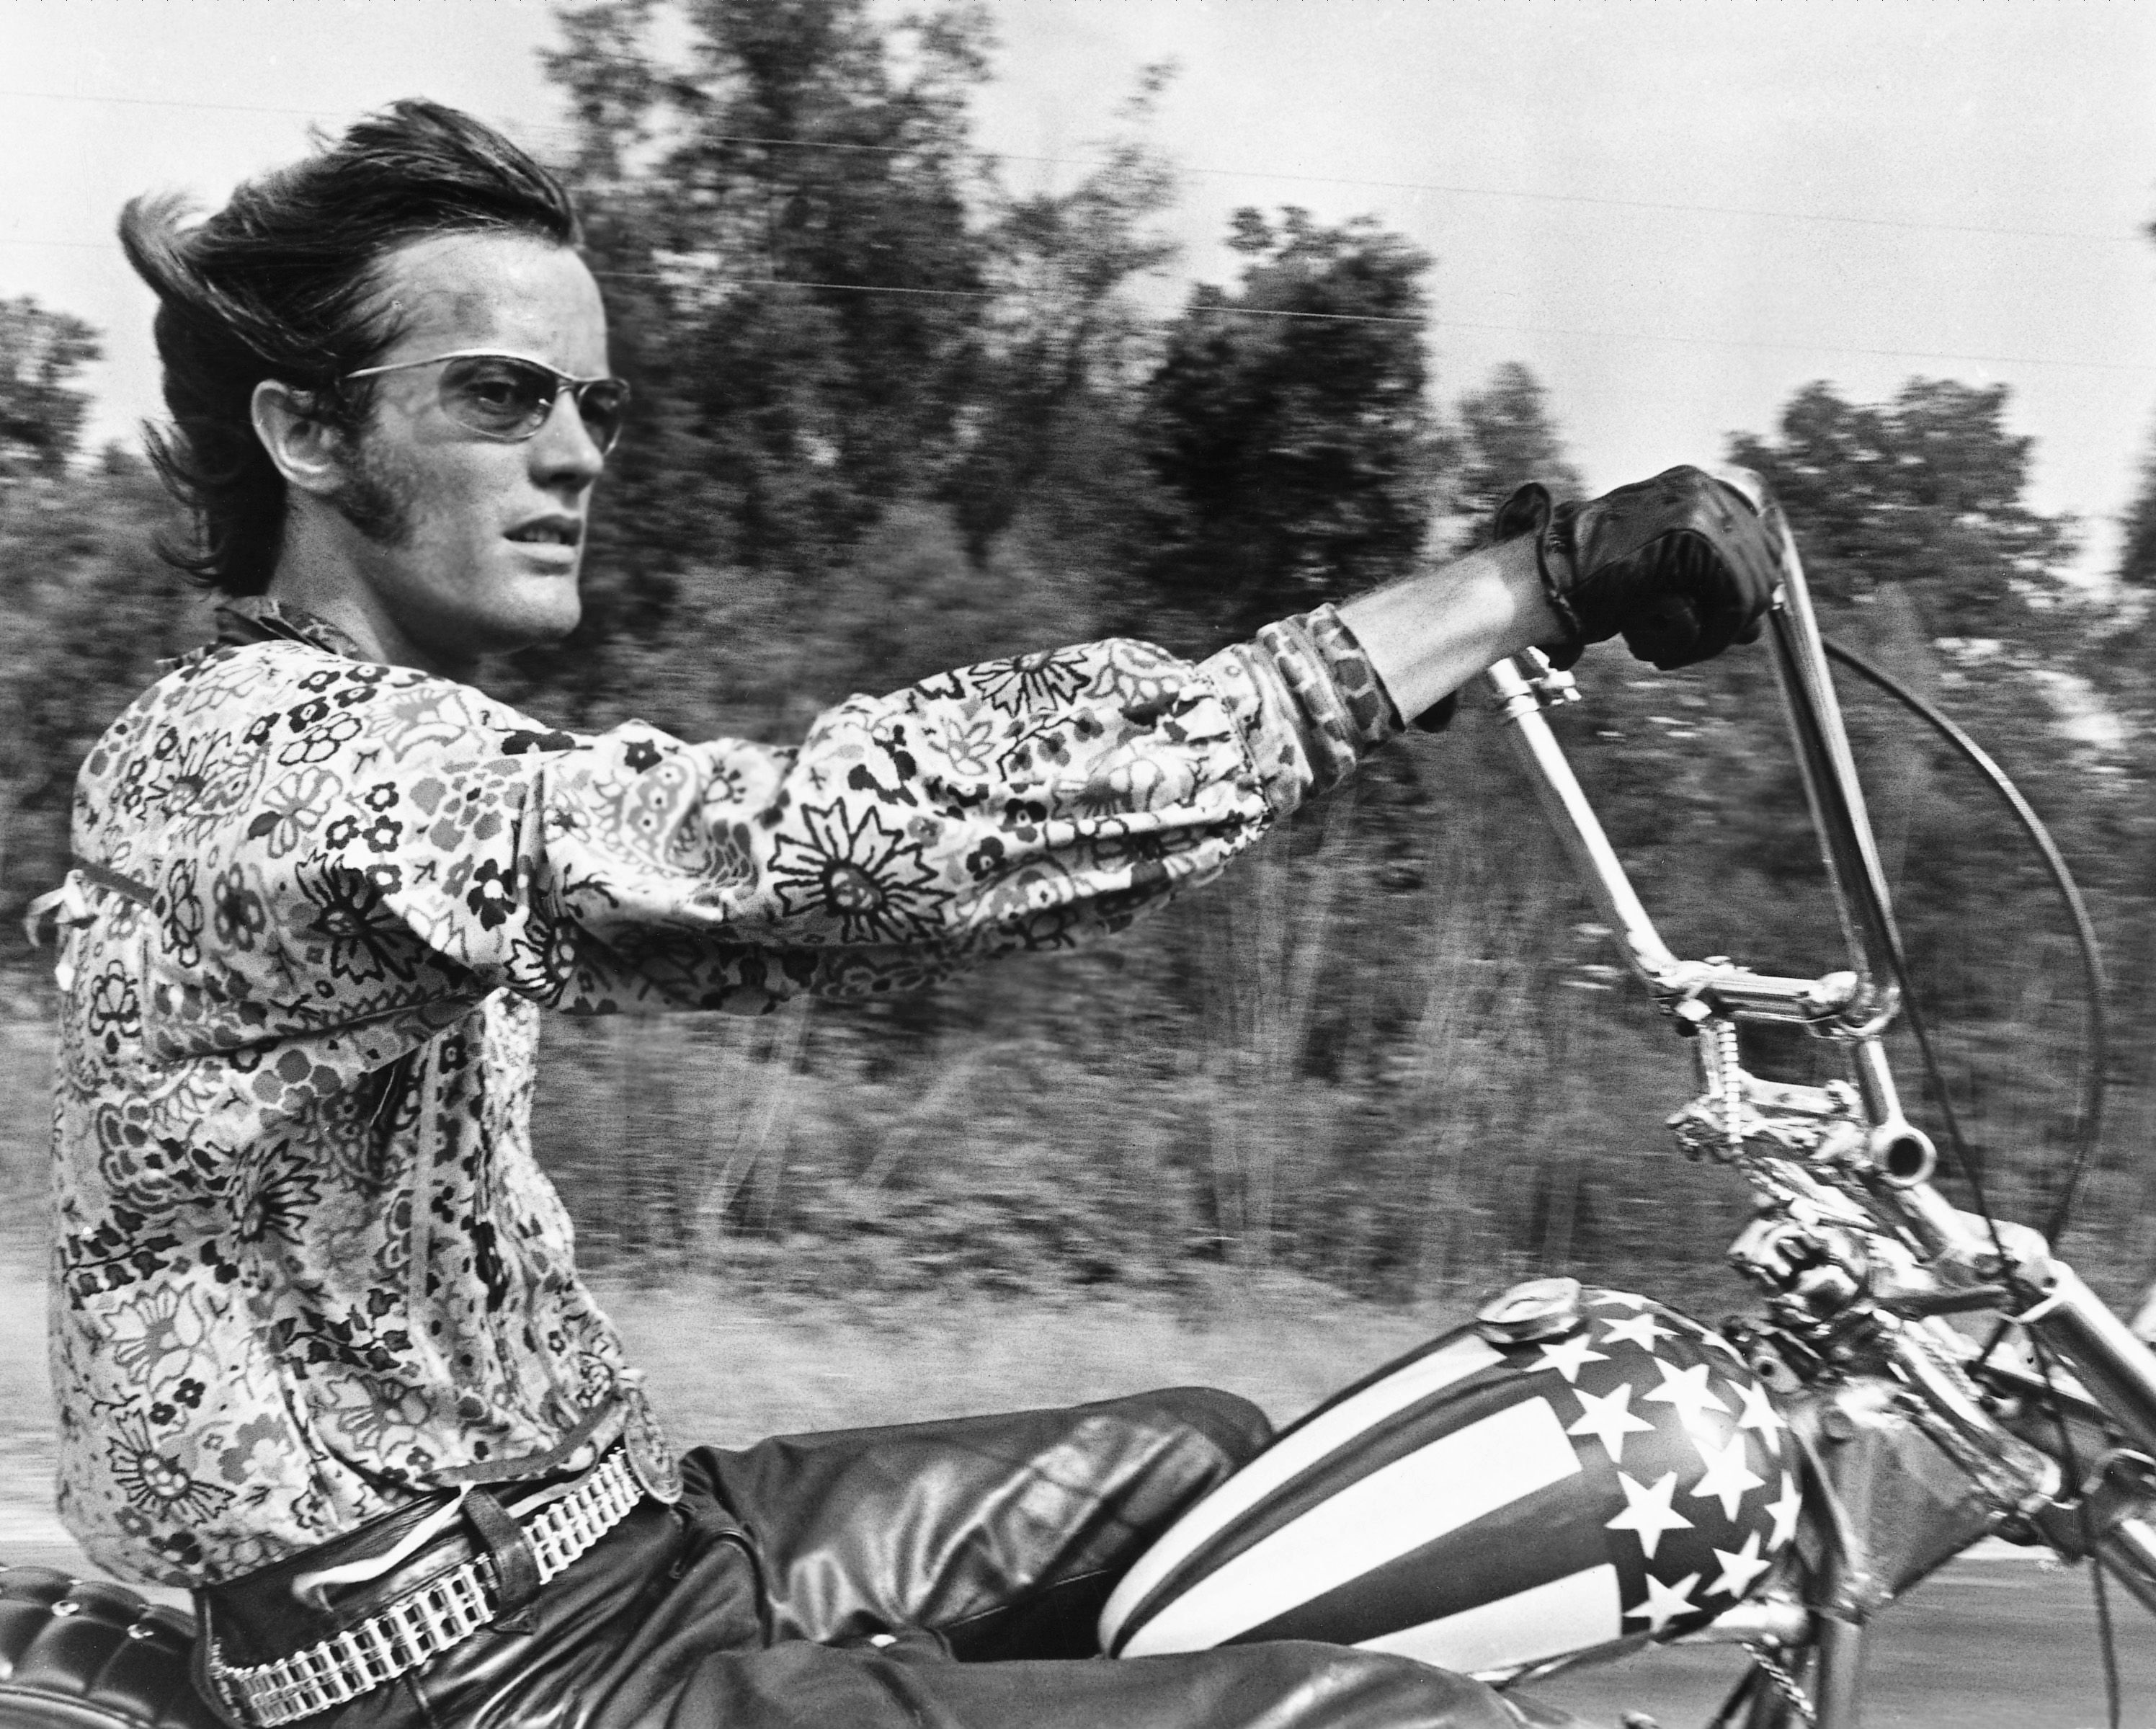 Peter Fonda, What I've Learned